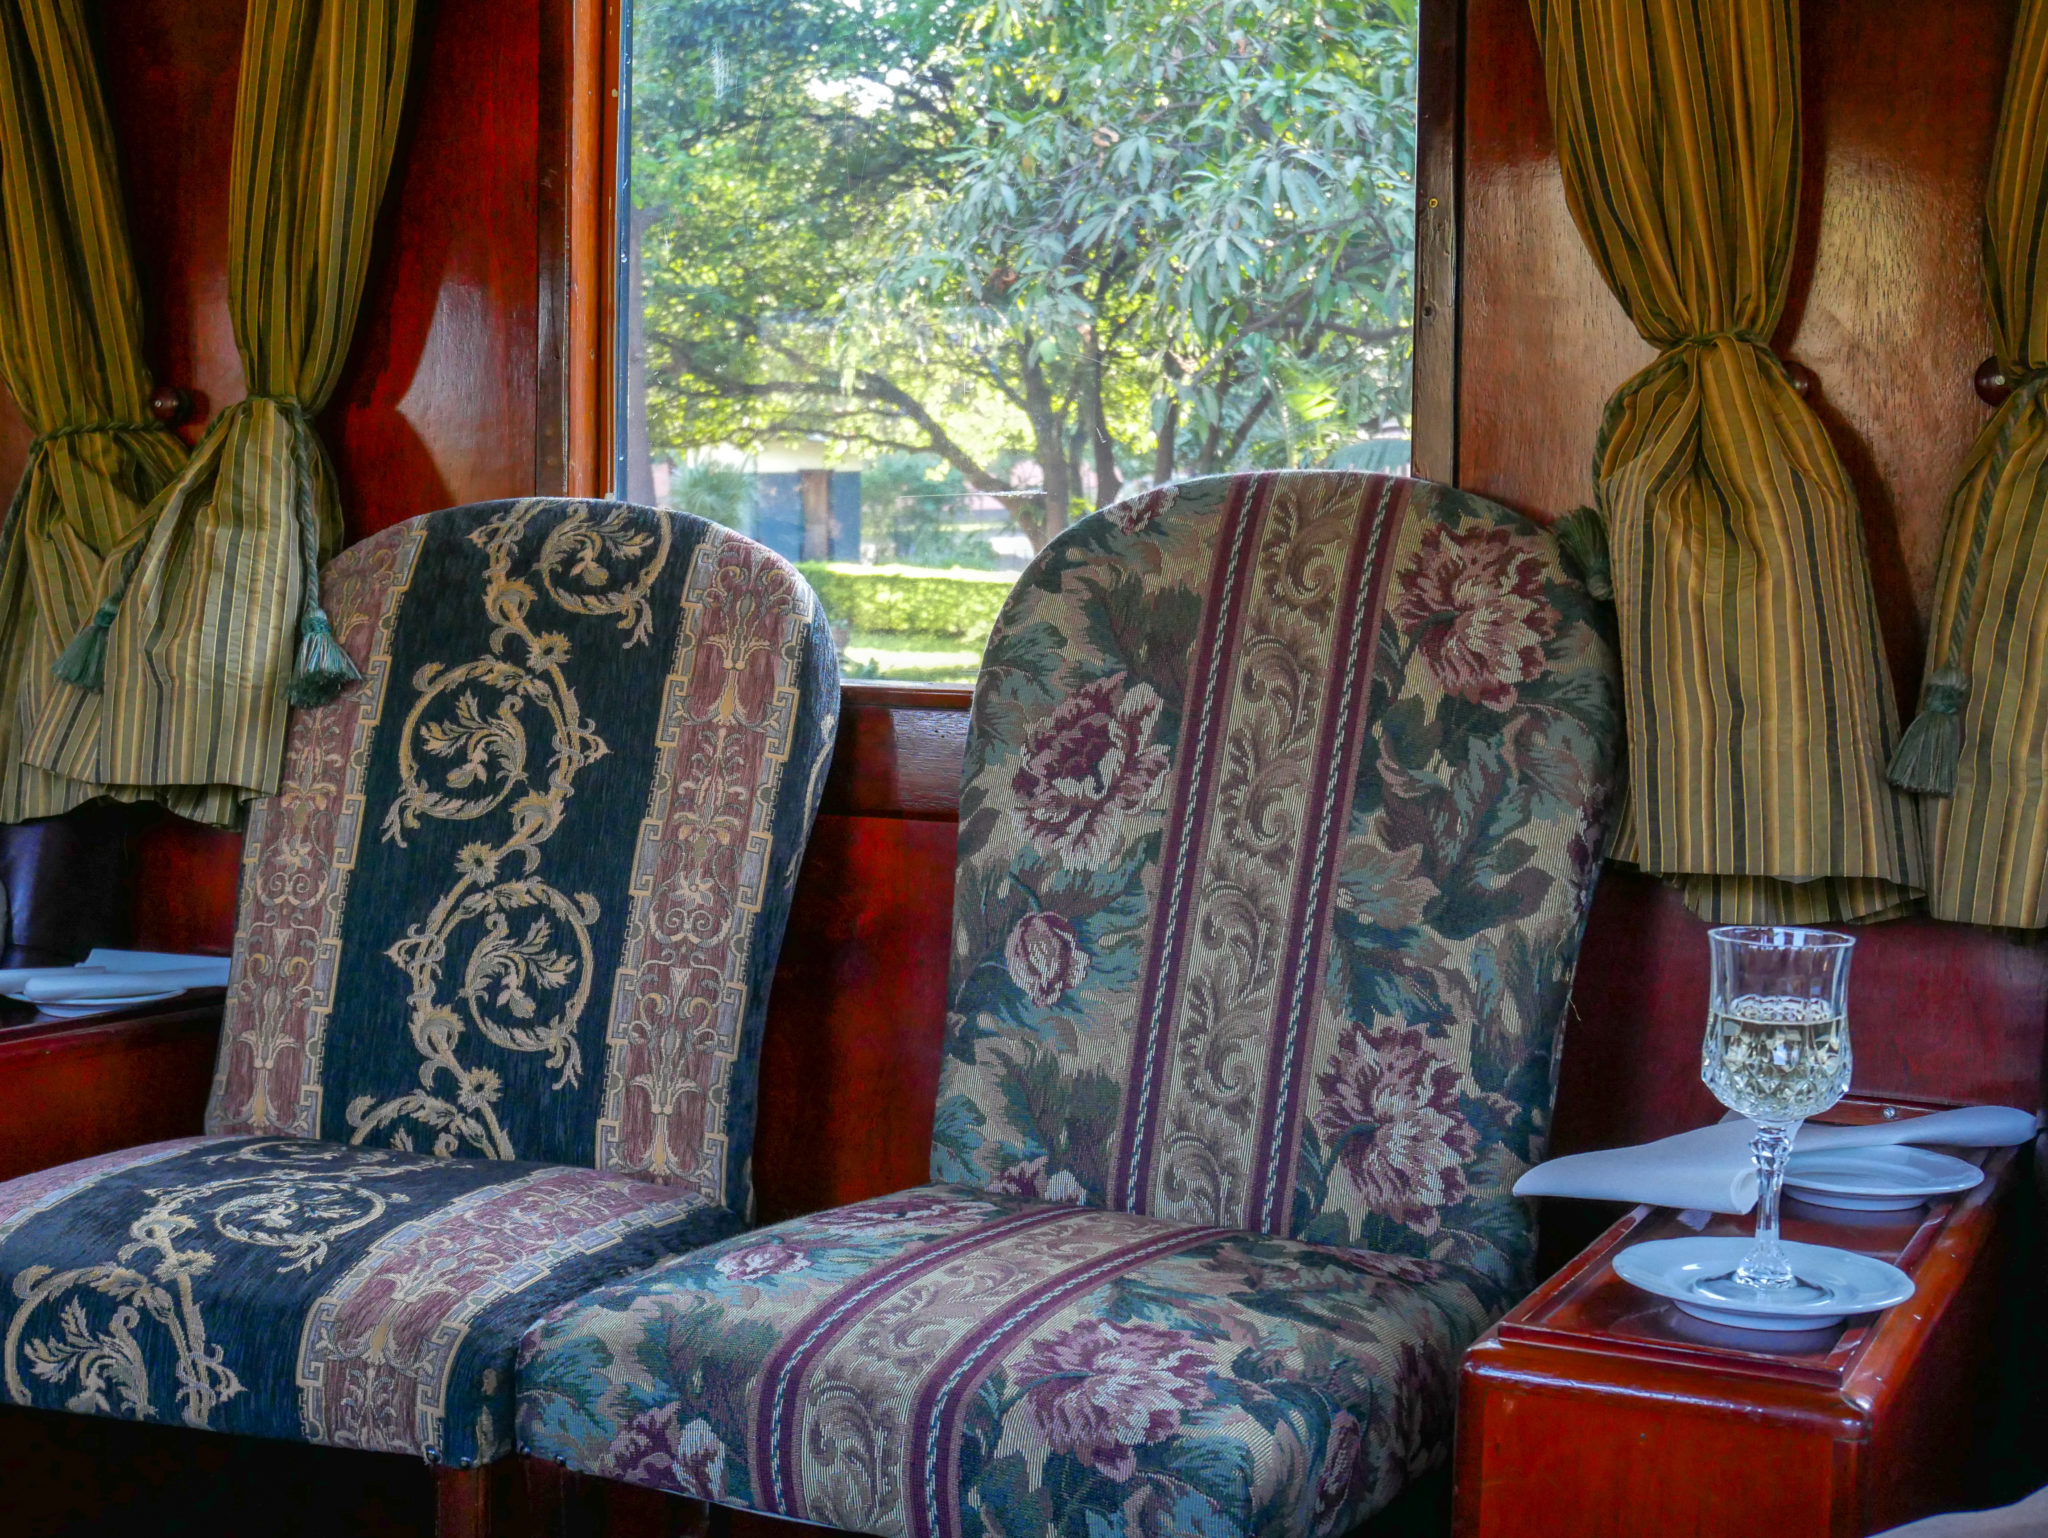 Floral upholstered chair in the Lounge Car of the Royal Livingstone Express train